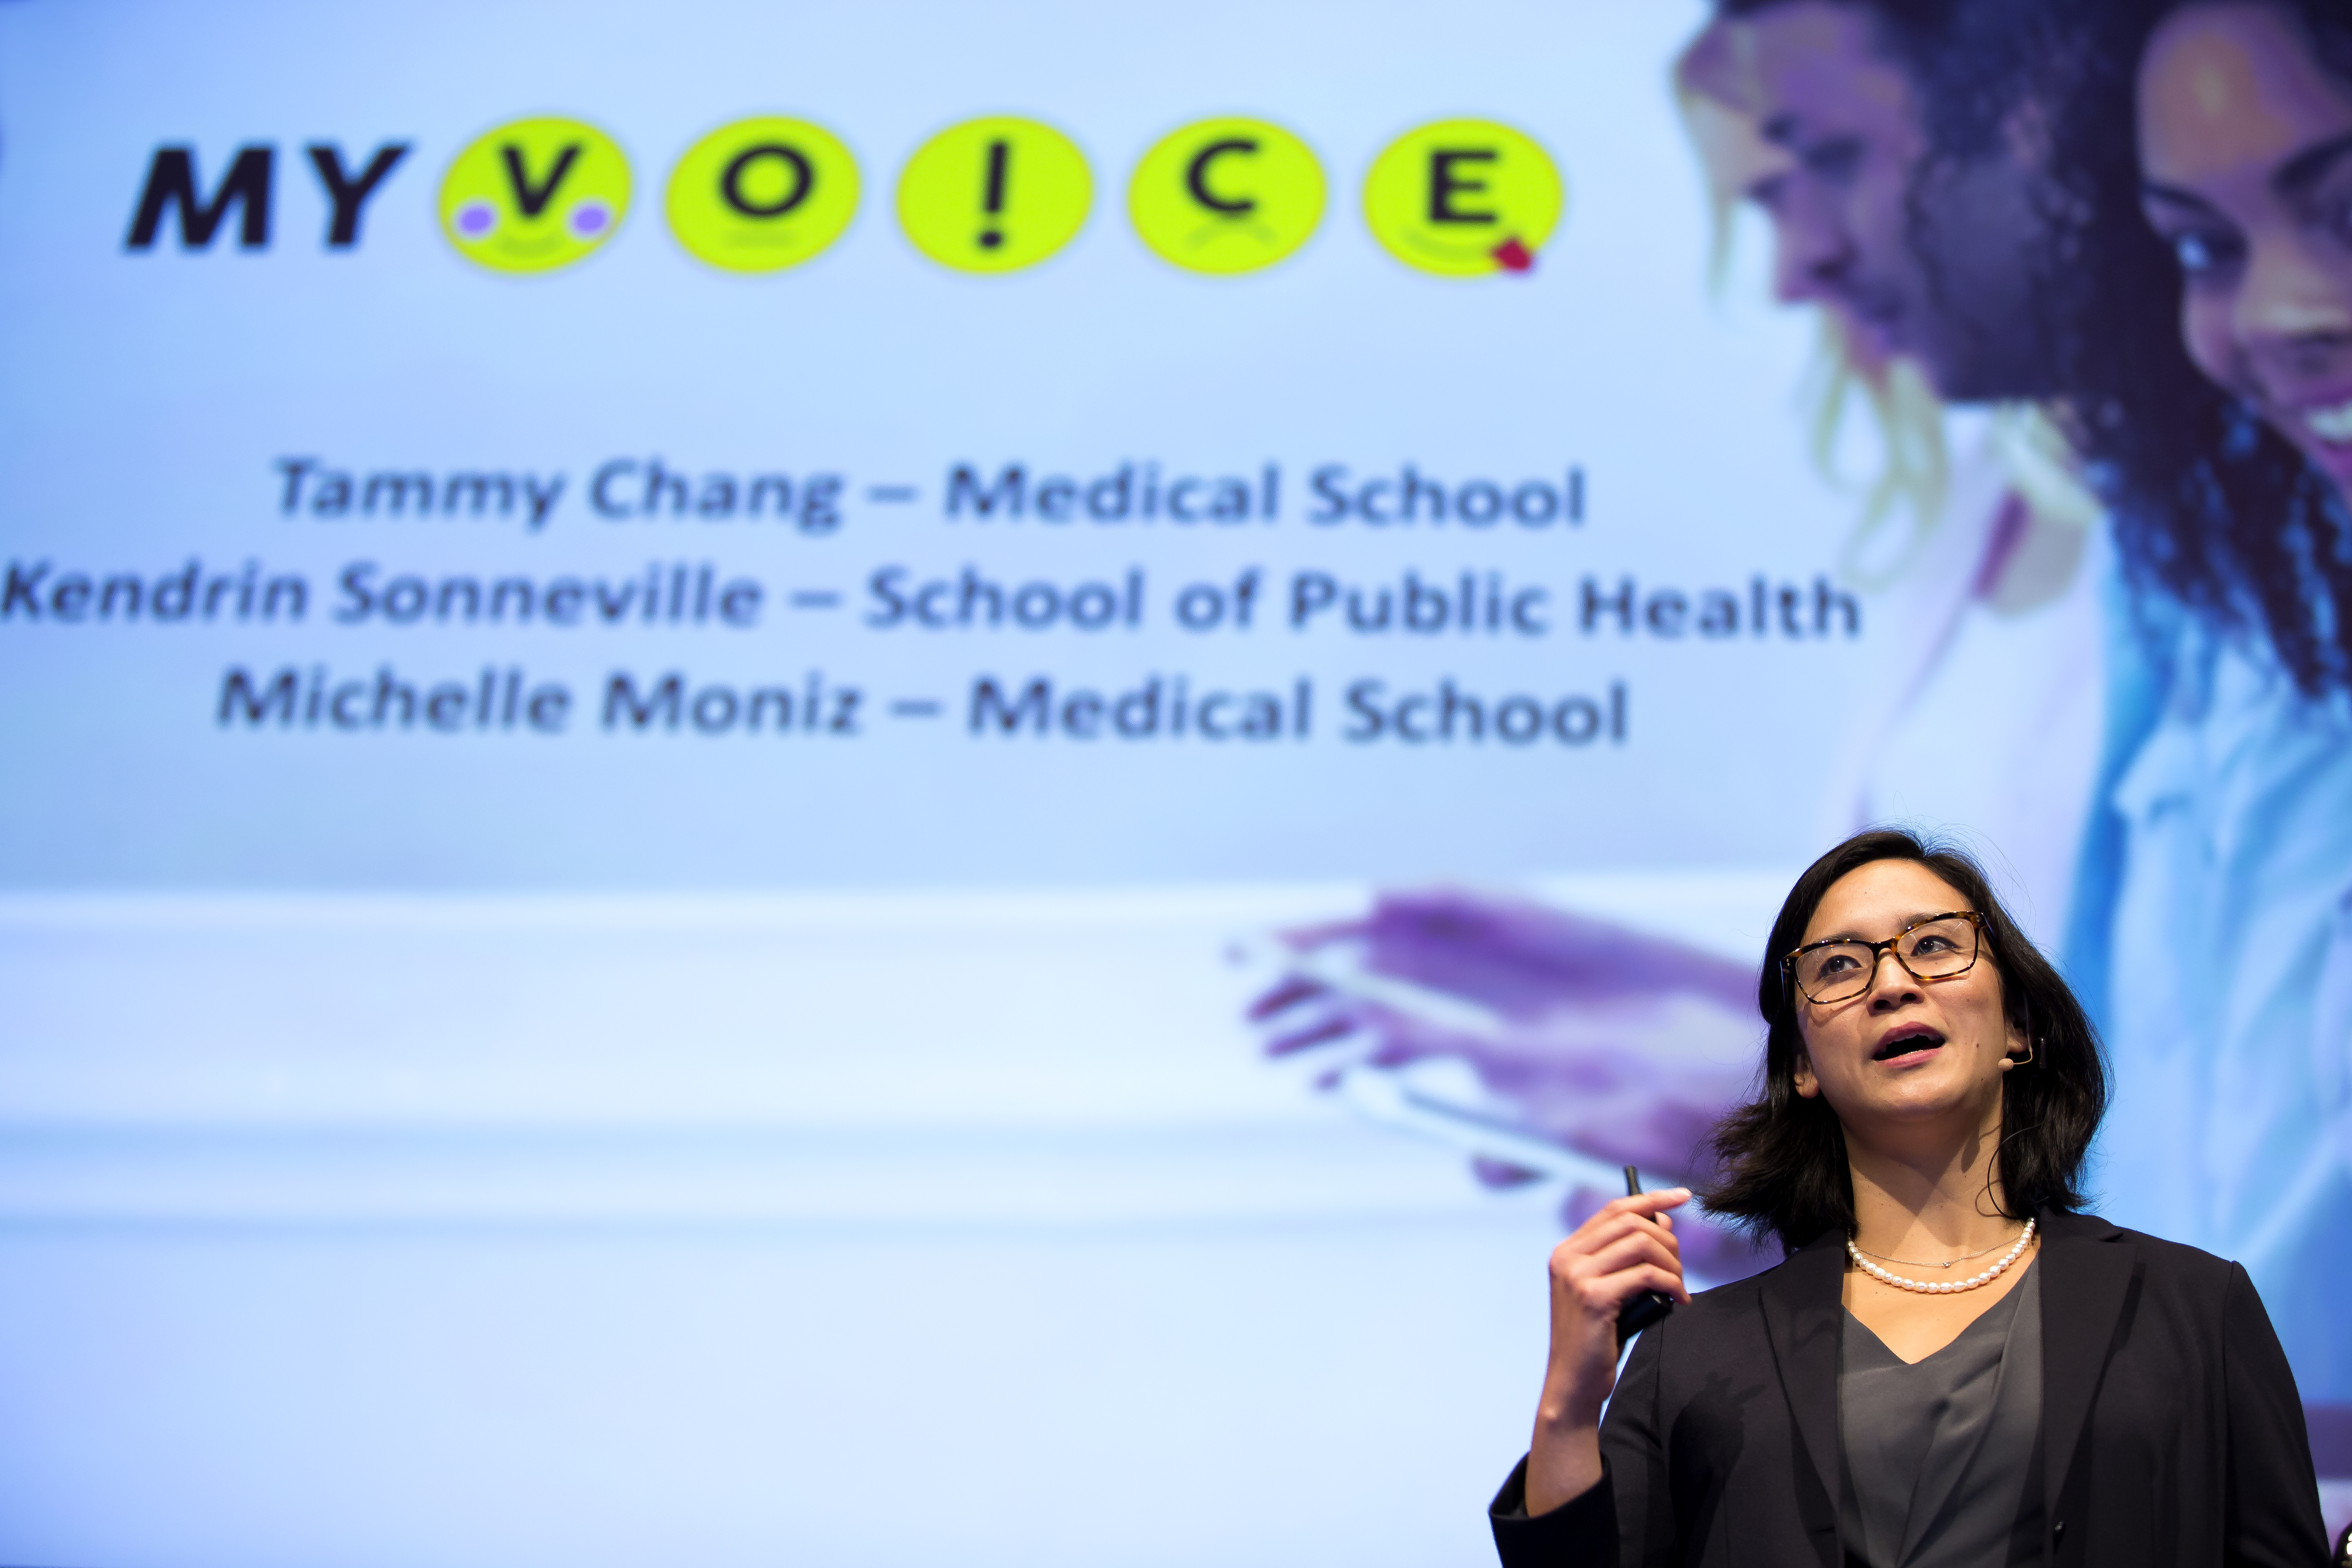 Tammy Chang presenting MyVoice at MCubed